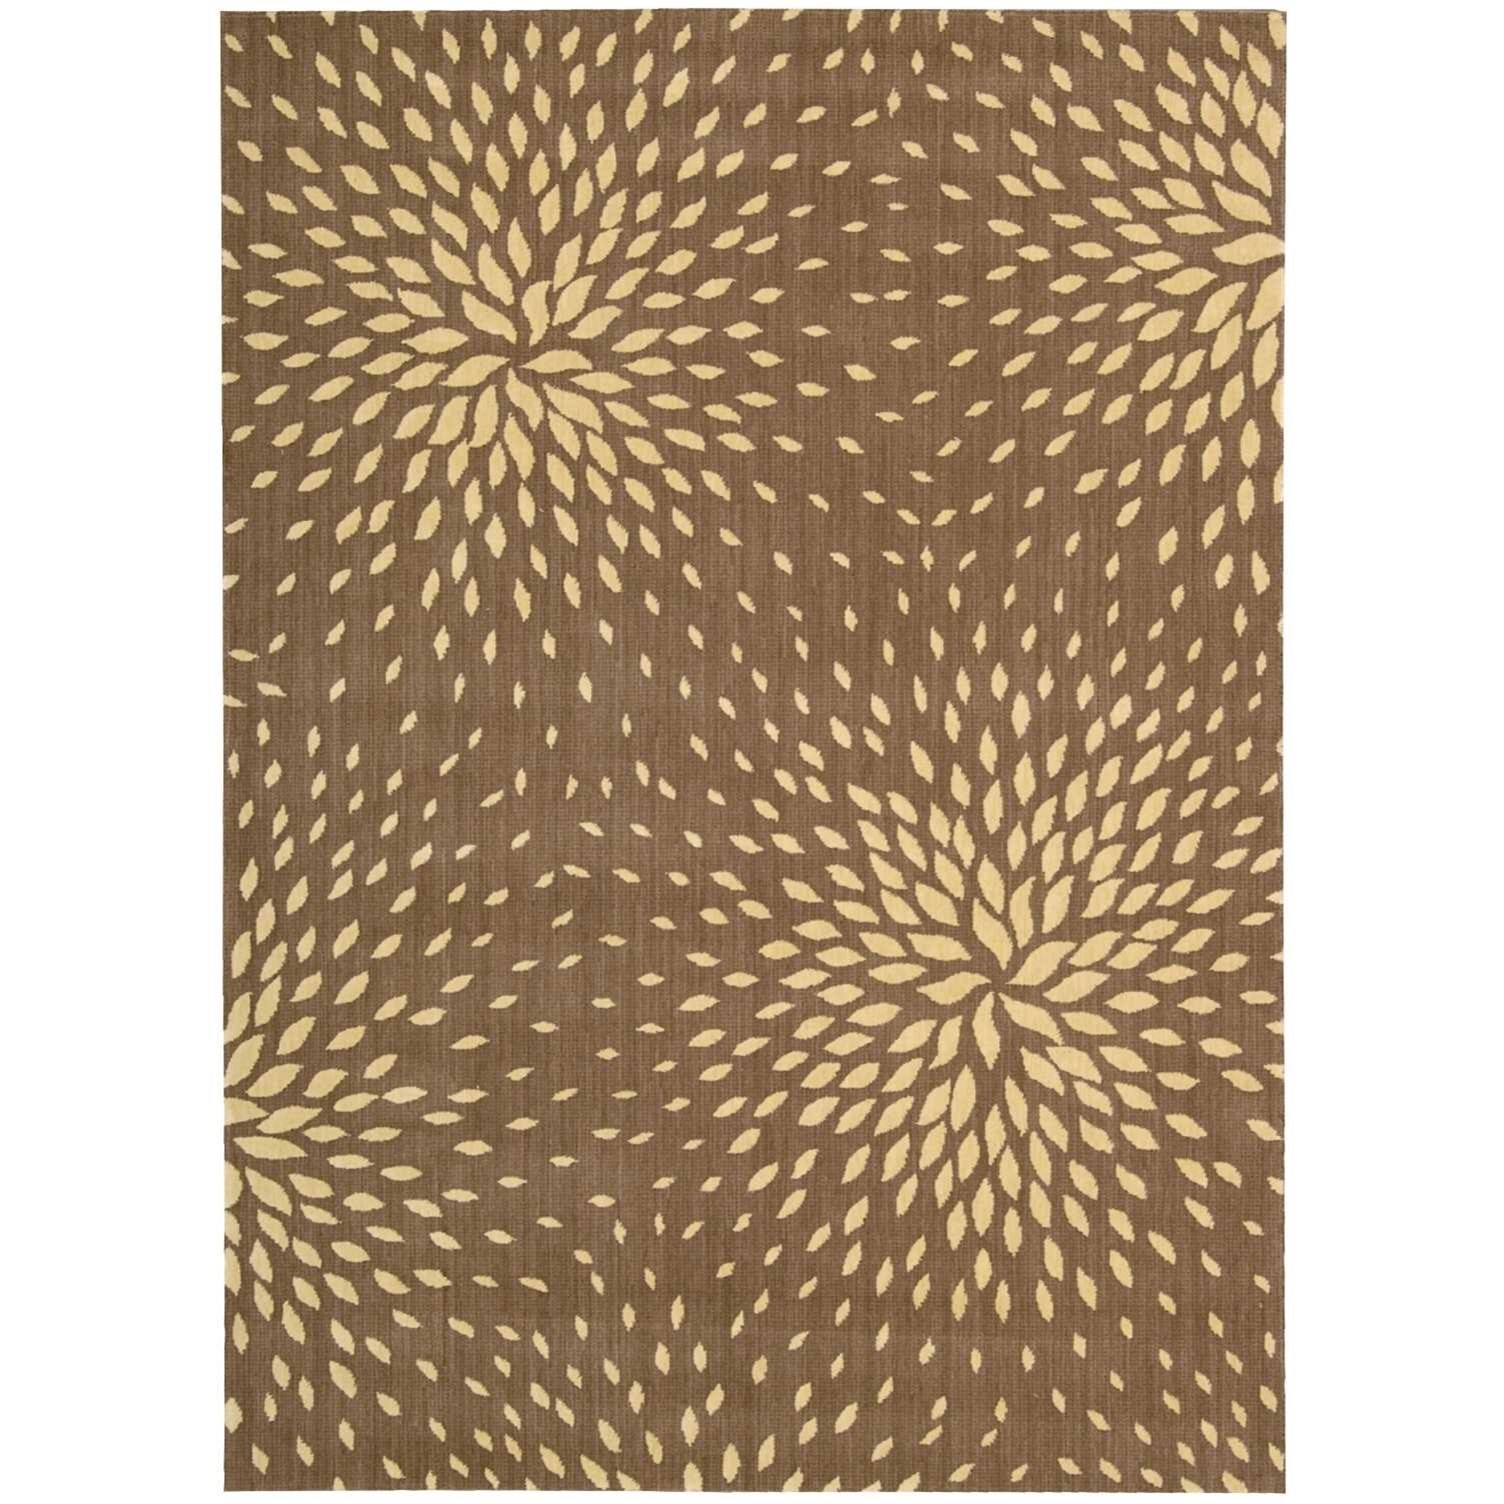 """Capri 9'6"""" x 13' Mocha Rectangle Rug by Nourison at Home Collections Furniture"""